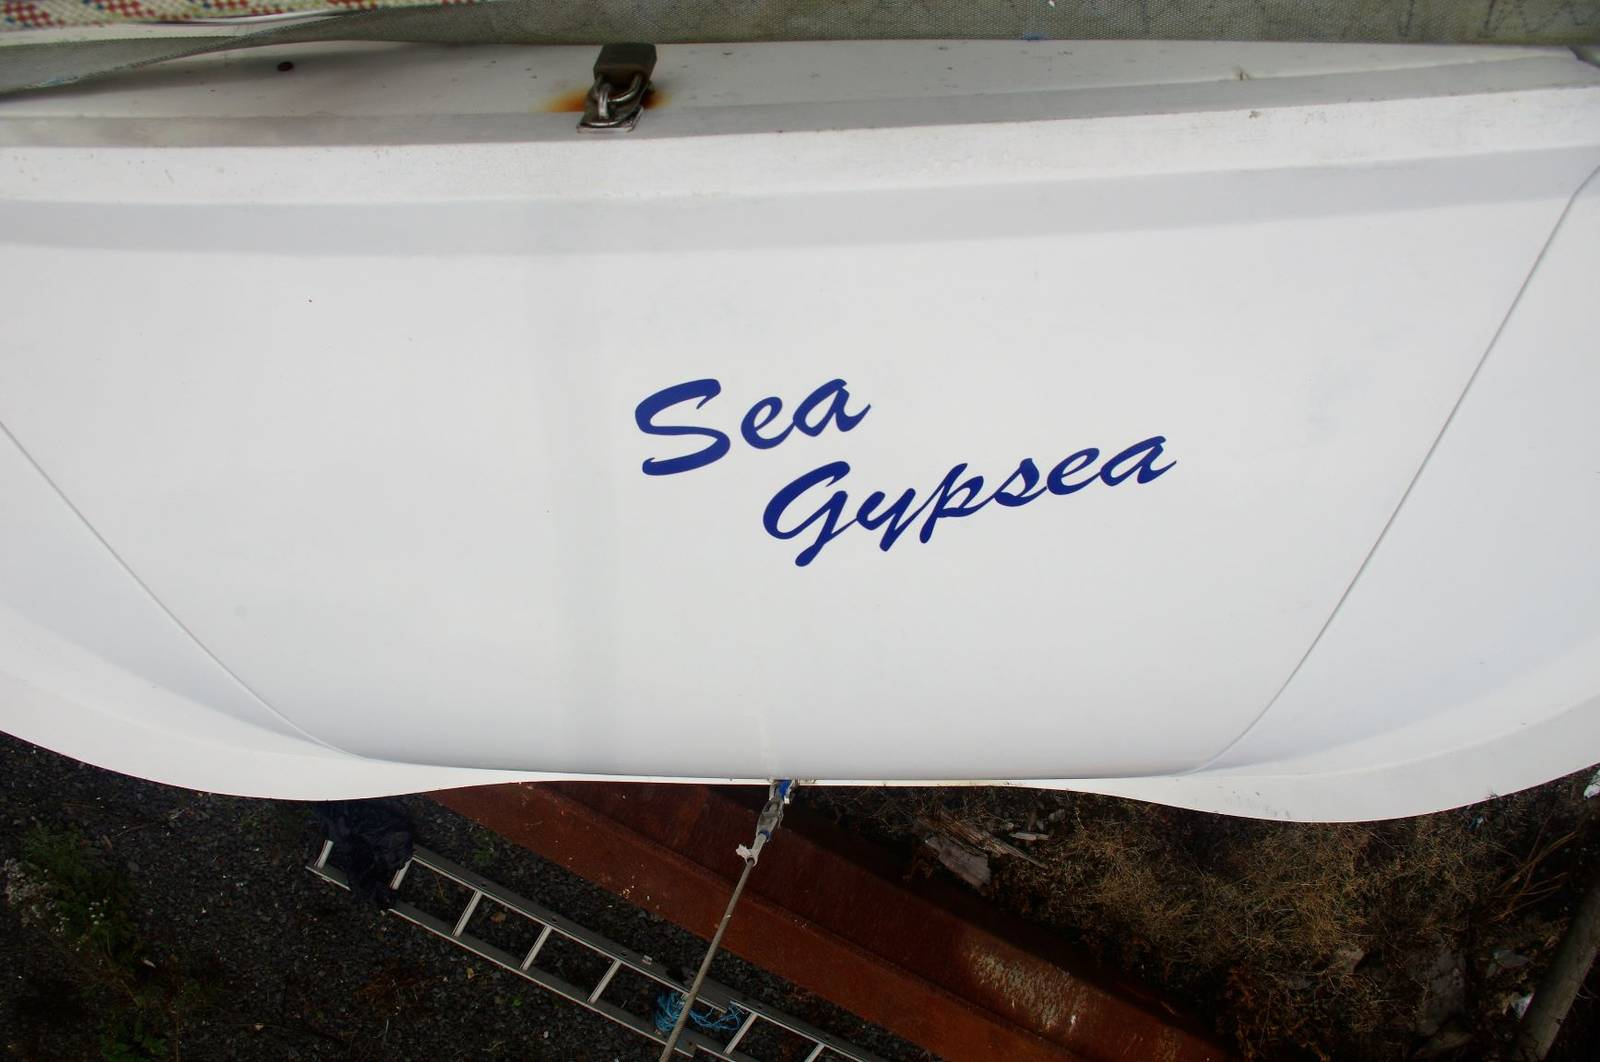 Gibsea 90 for sale. At Yachts.co Neyland. www.yachts.co tel:01646602500